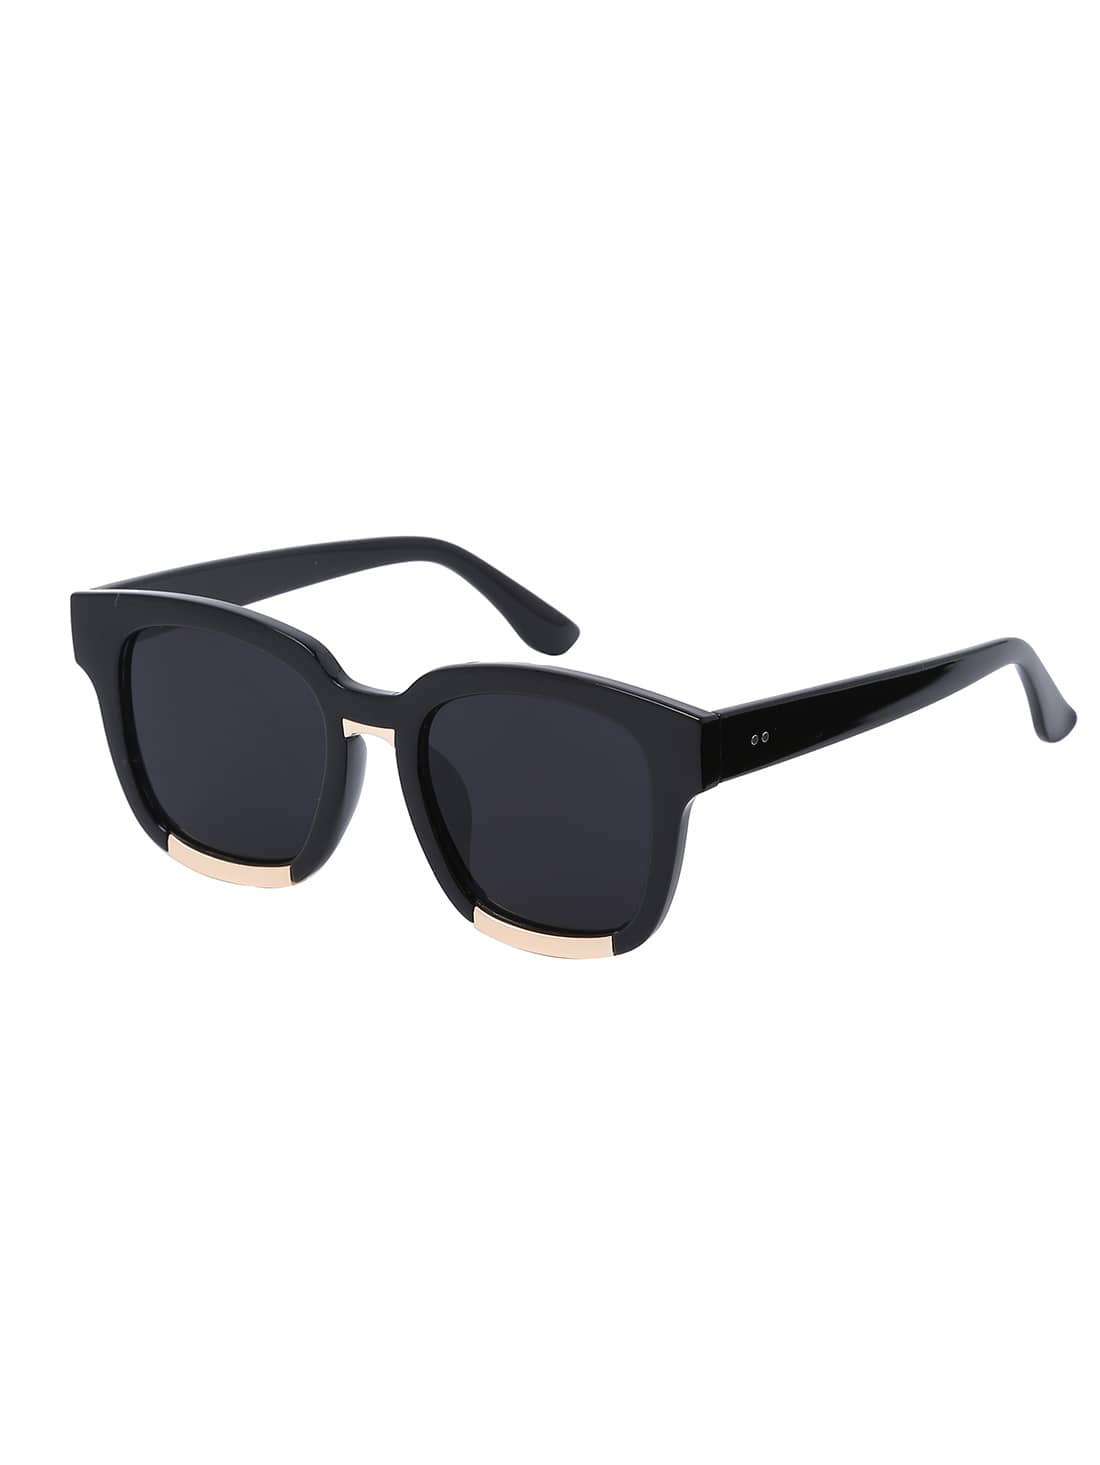 Black Vintage Square Frame Sunglasses -SheIn(Sheinside)